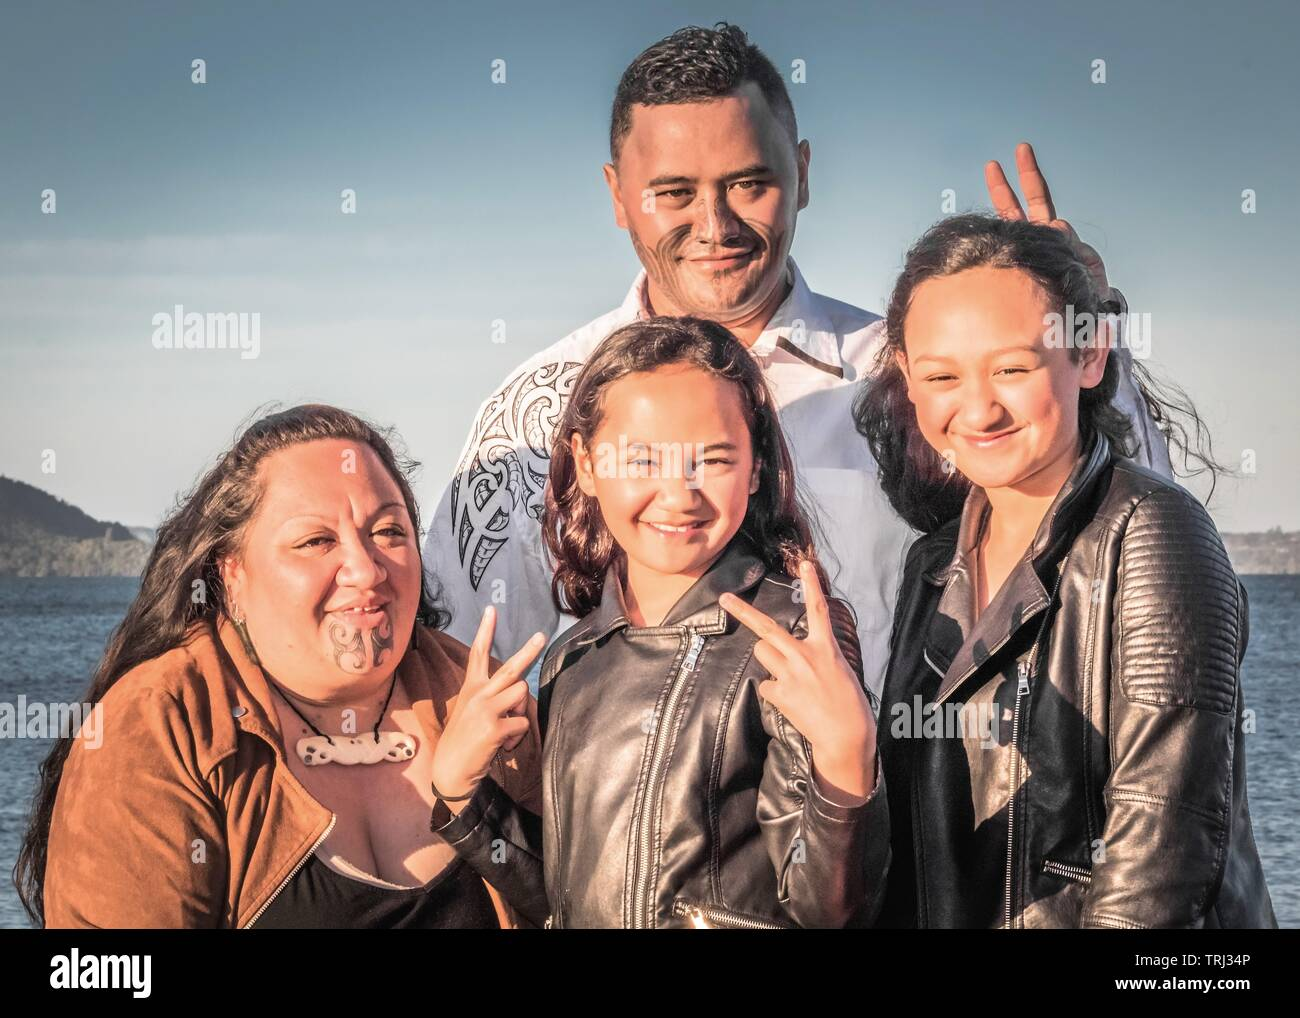 Portrait of a young Maori family taken outdoors - Stock Image